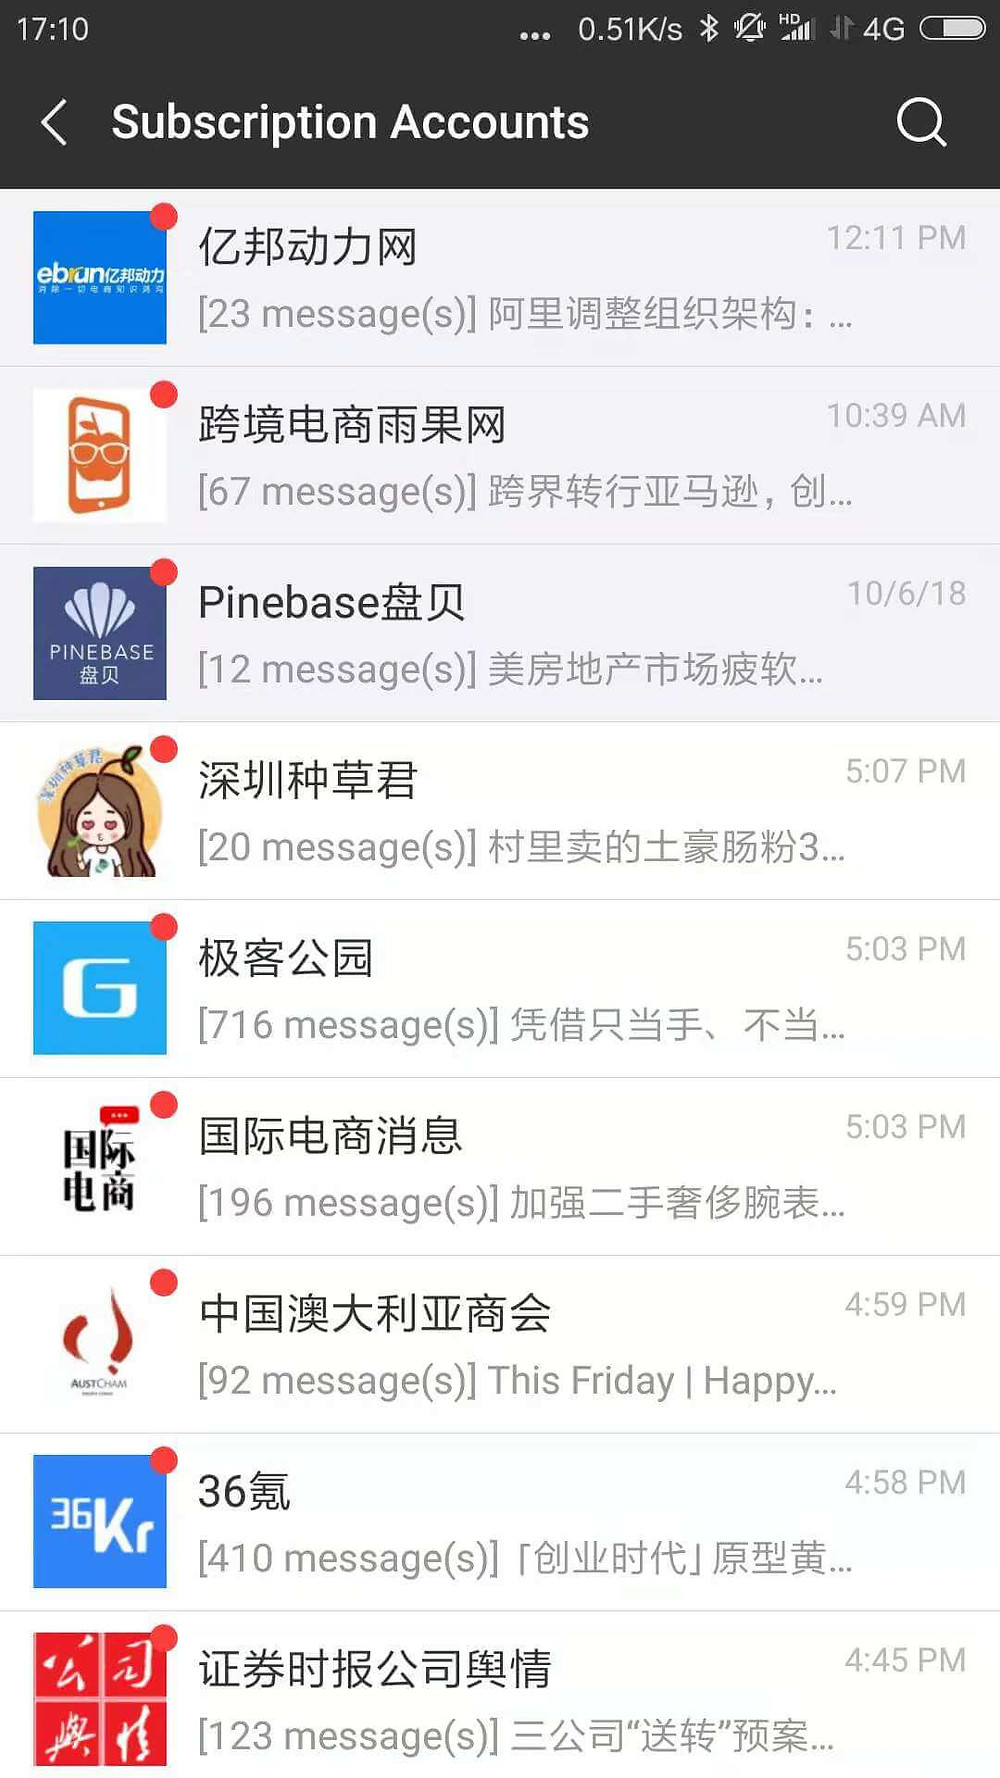 A list of WeChat subscription accounts